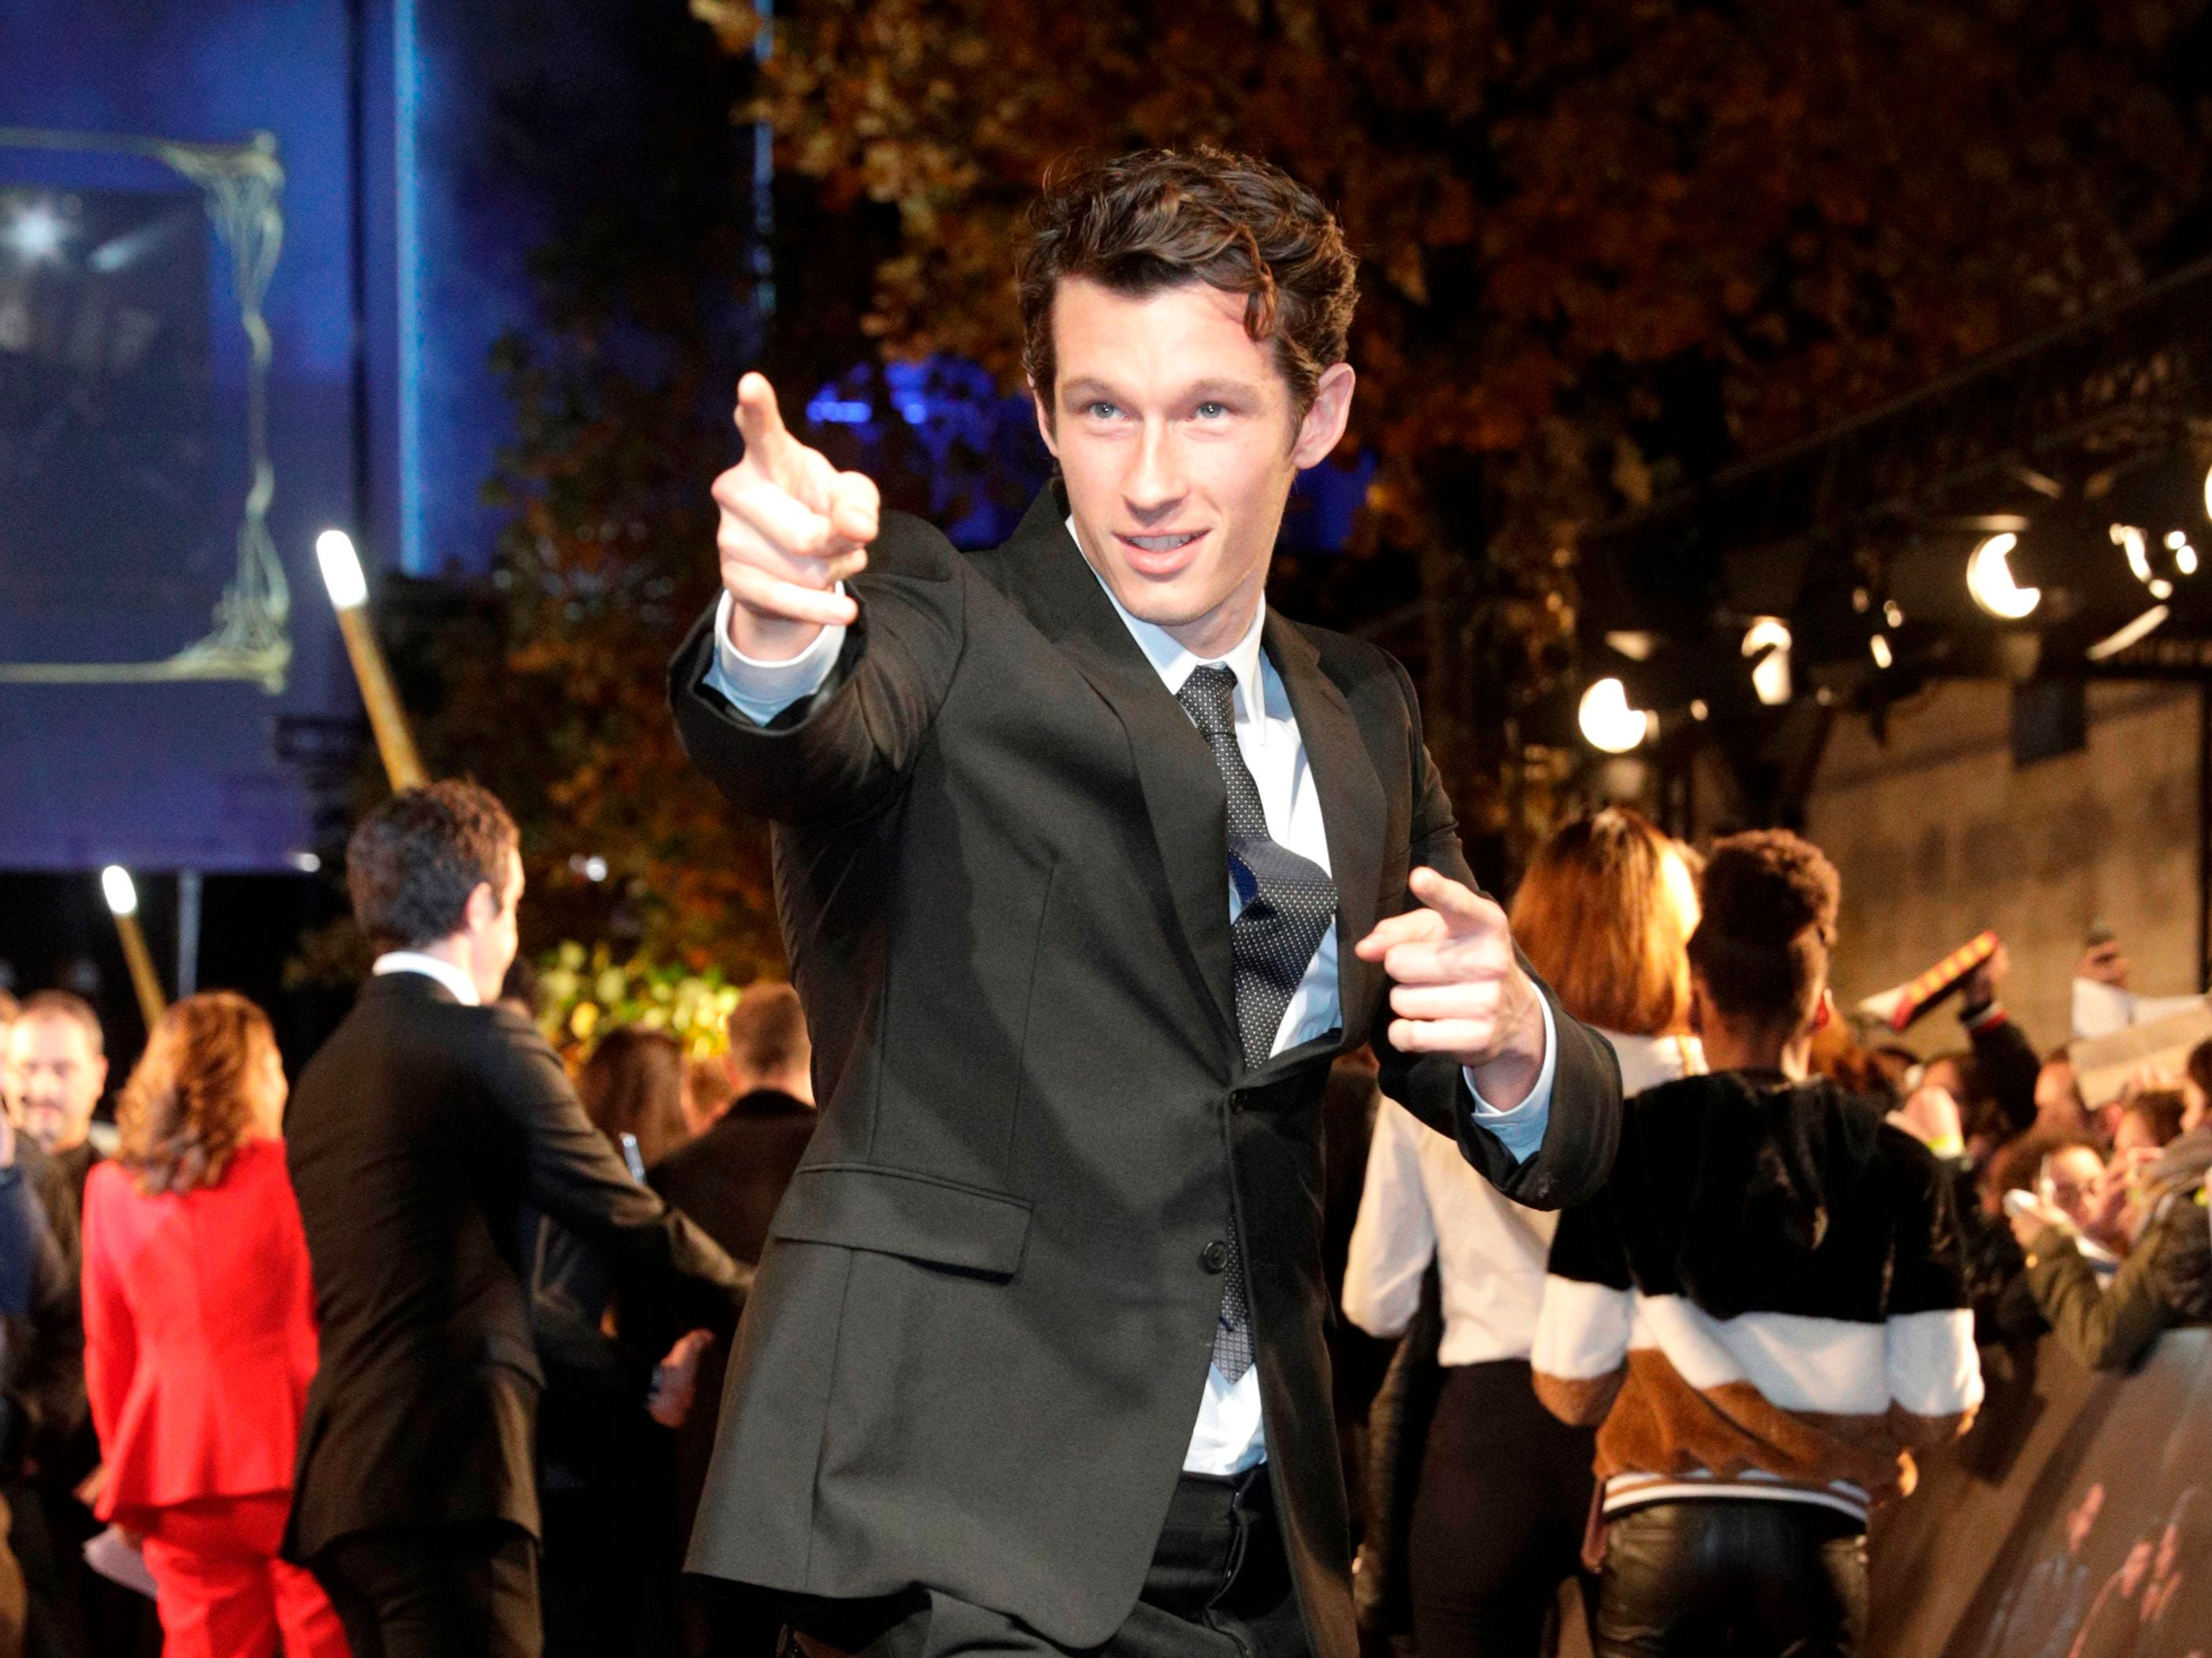 British actor Callum Turner poses for photographers as he arrives for the premier of the fantasy film 'Fantastic Beasts: The Crimes of Grindelwald' in Paris on November 8, 2018. (Photo by Geoffroy VAN DER HASSELT / AFP)GEOFFROY VAN DER HASSELT/AFP/Getty Images ORIG FILE ID: AFP_1AO91P